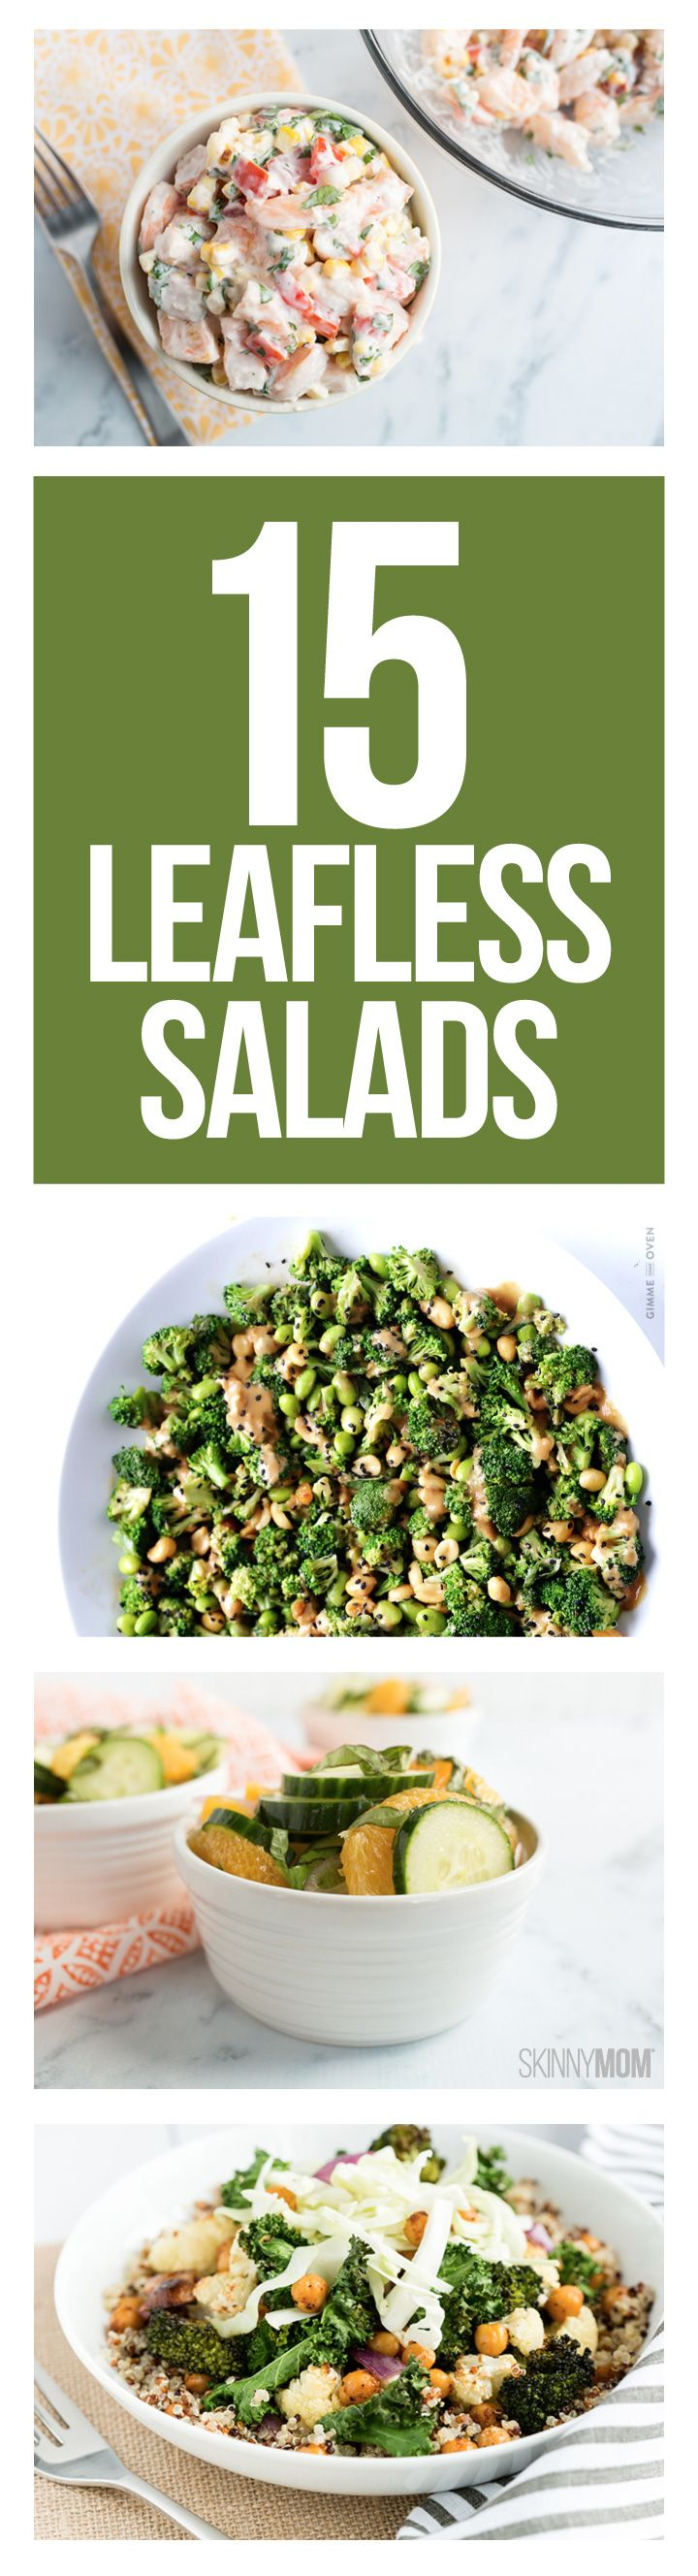 No-lettuce salads to enjoy every day!